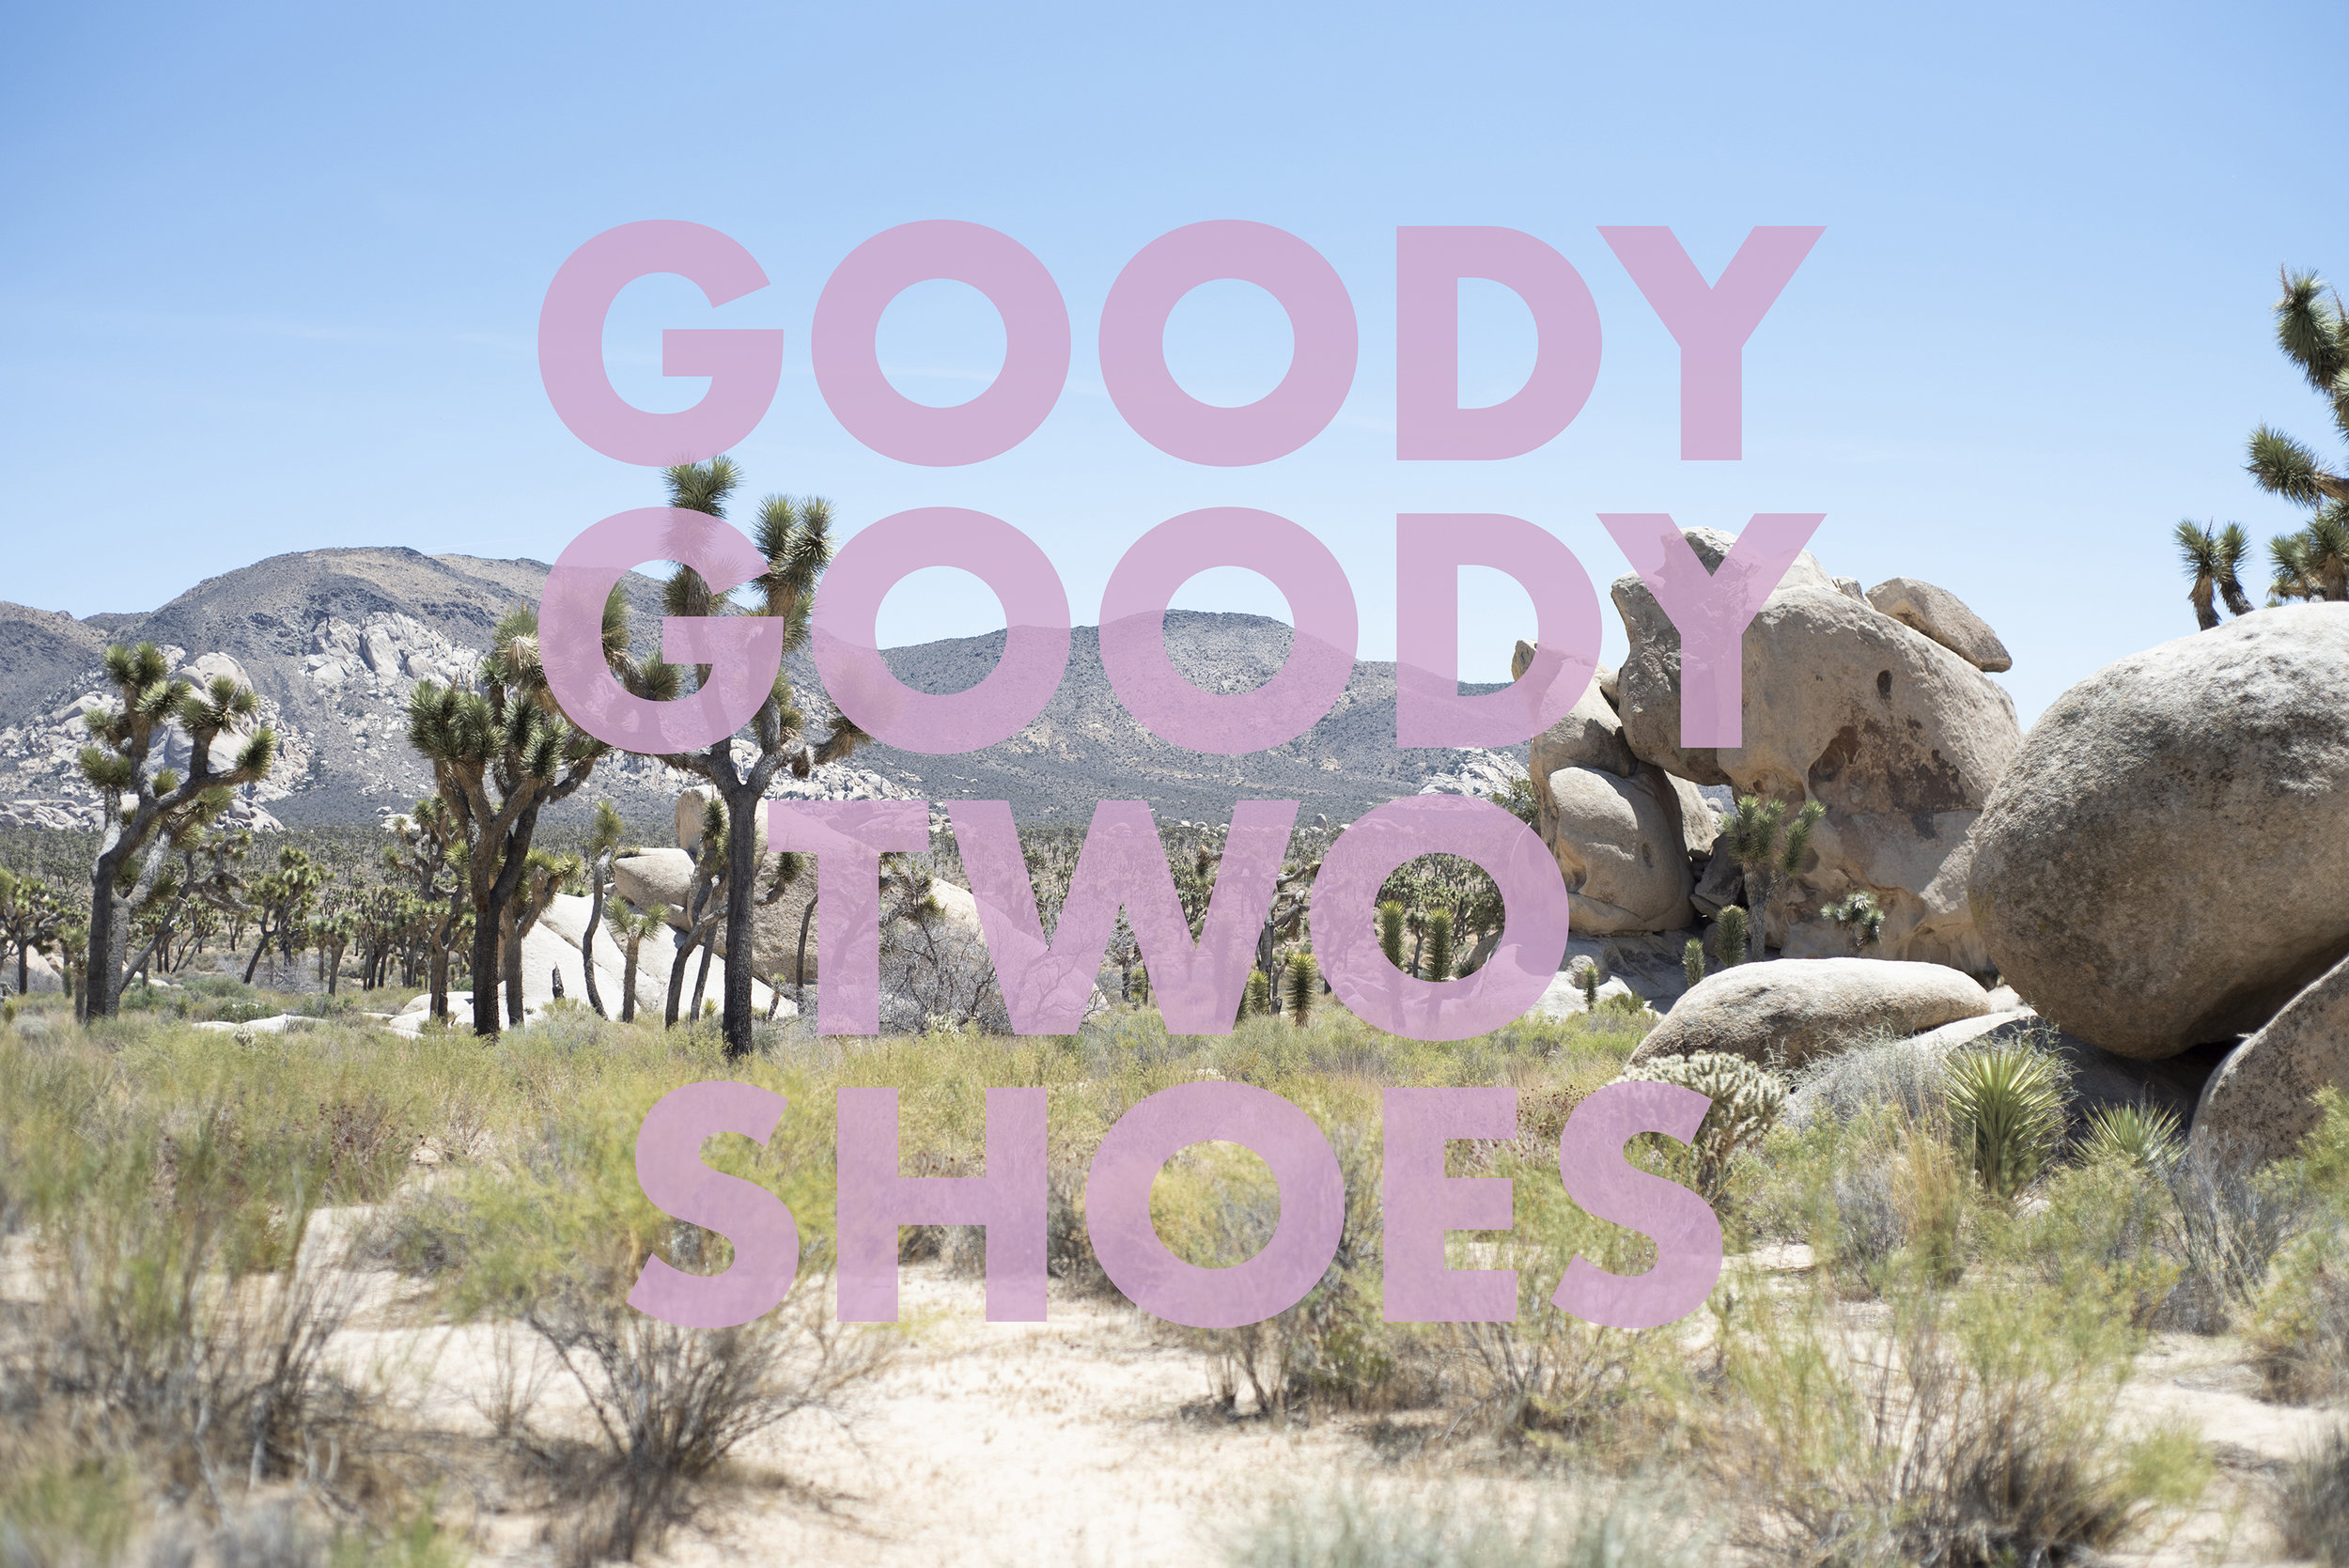 GOODYGOODYTWOSHOES , 2018  Joshua Tree National Park, CA